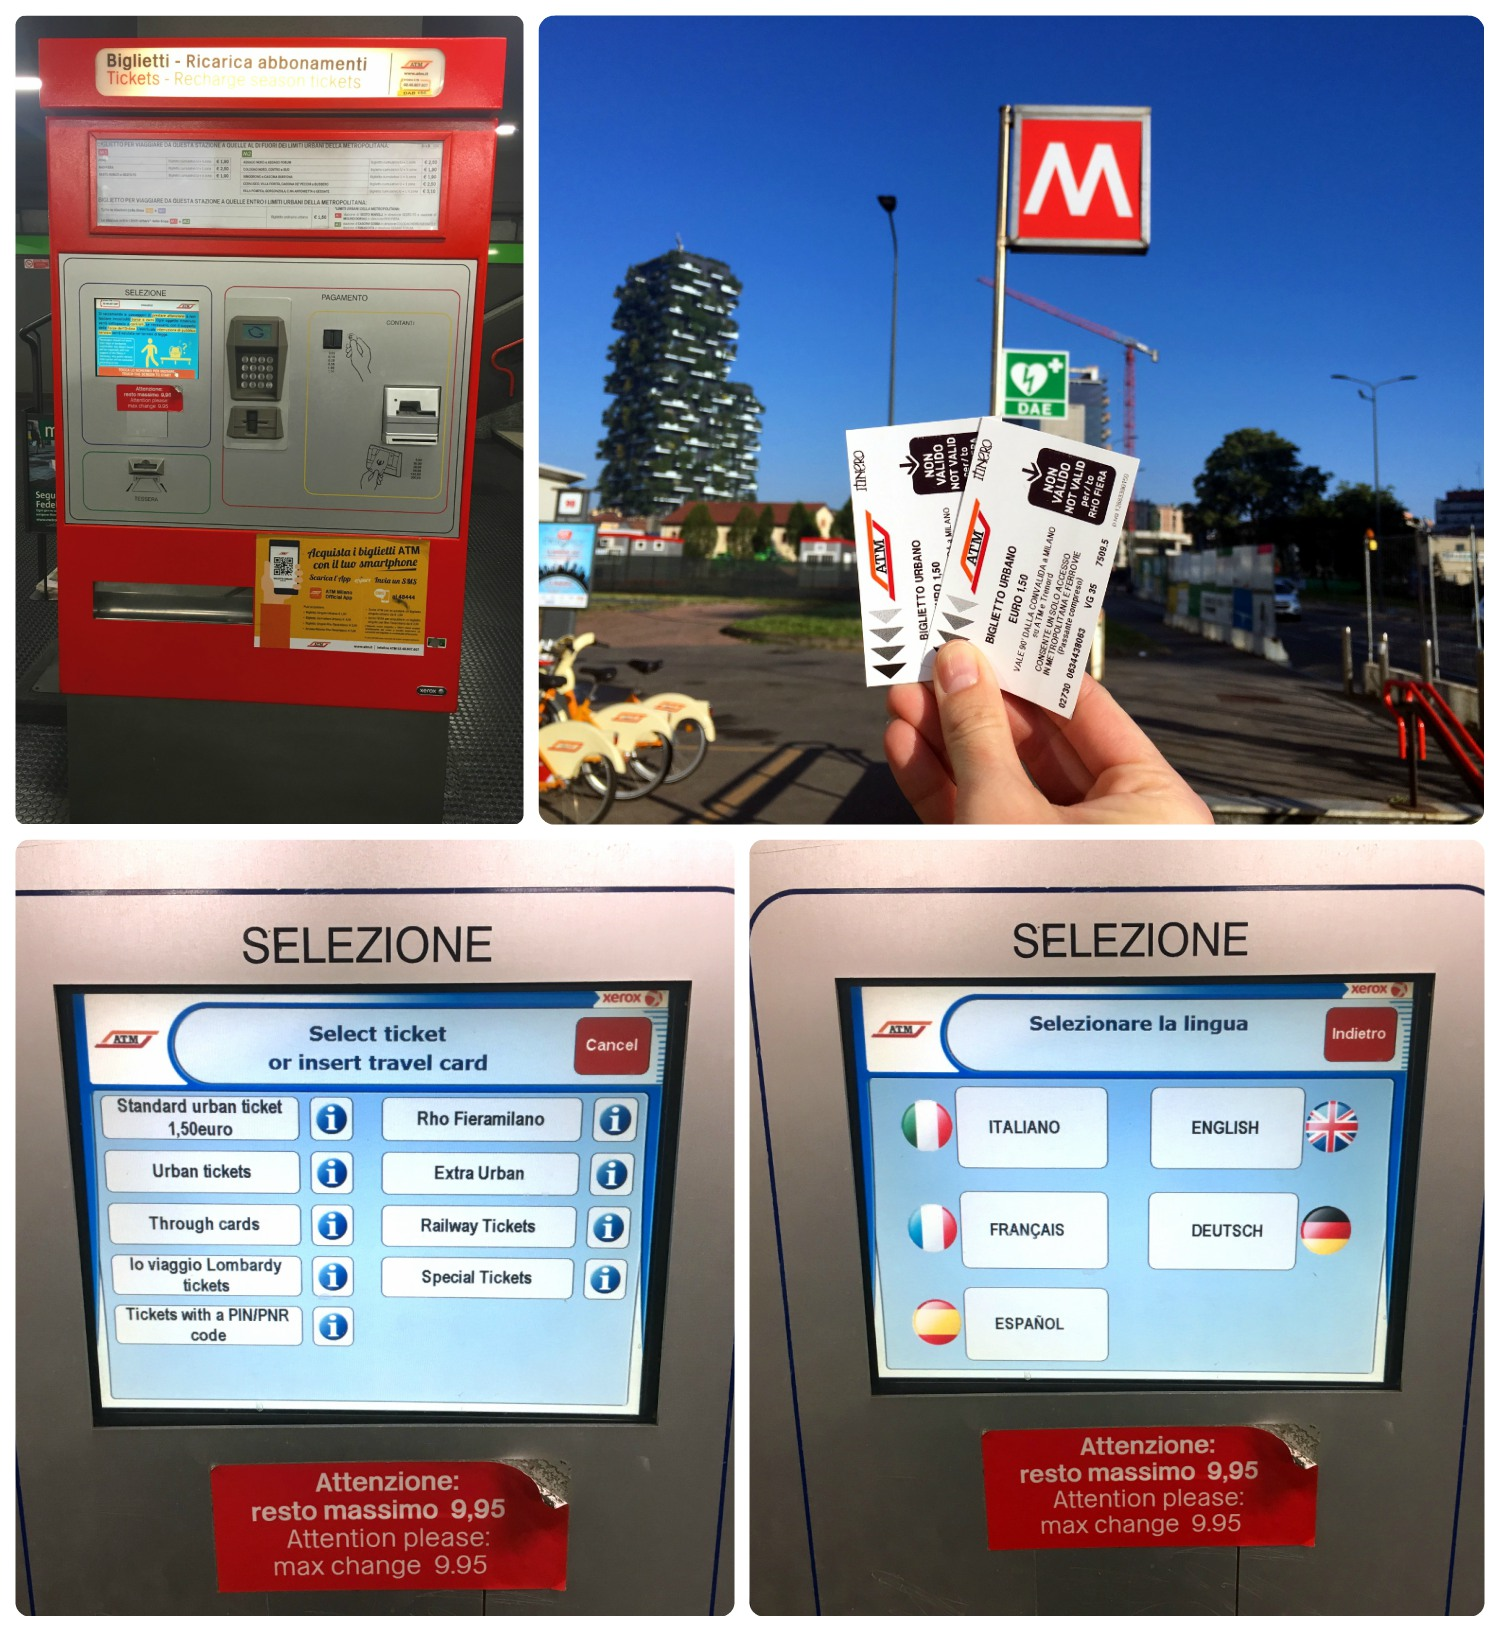 Clockwise (from the top): a ticket machine at a metro station, our public transportation tickets at a metro station, the screen on the ticket machine to choose your language, the screen to choose the type of ticket you want to purchase.